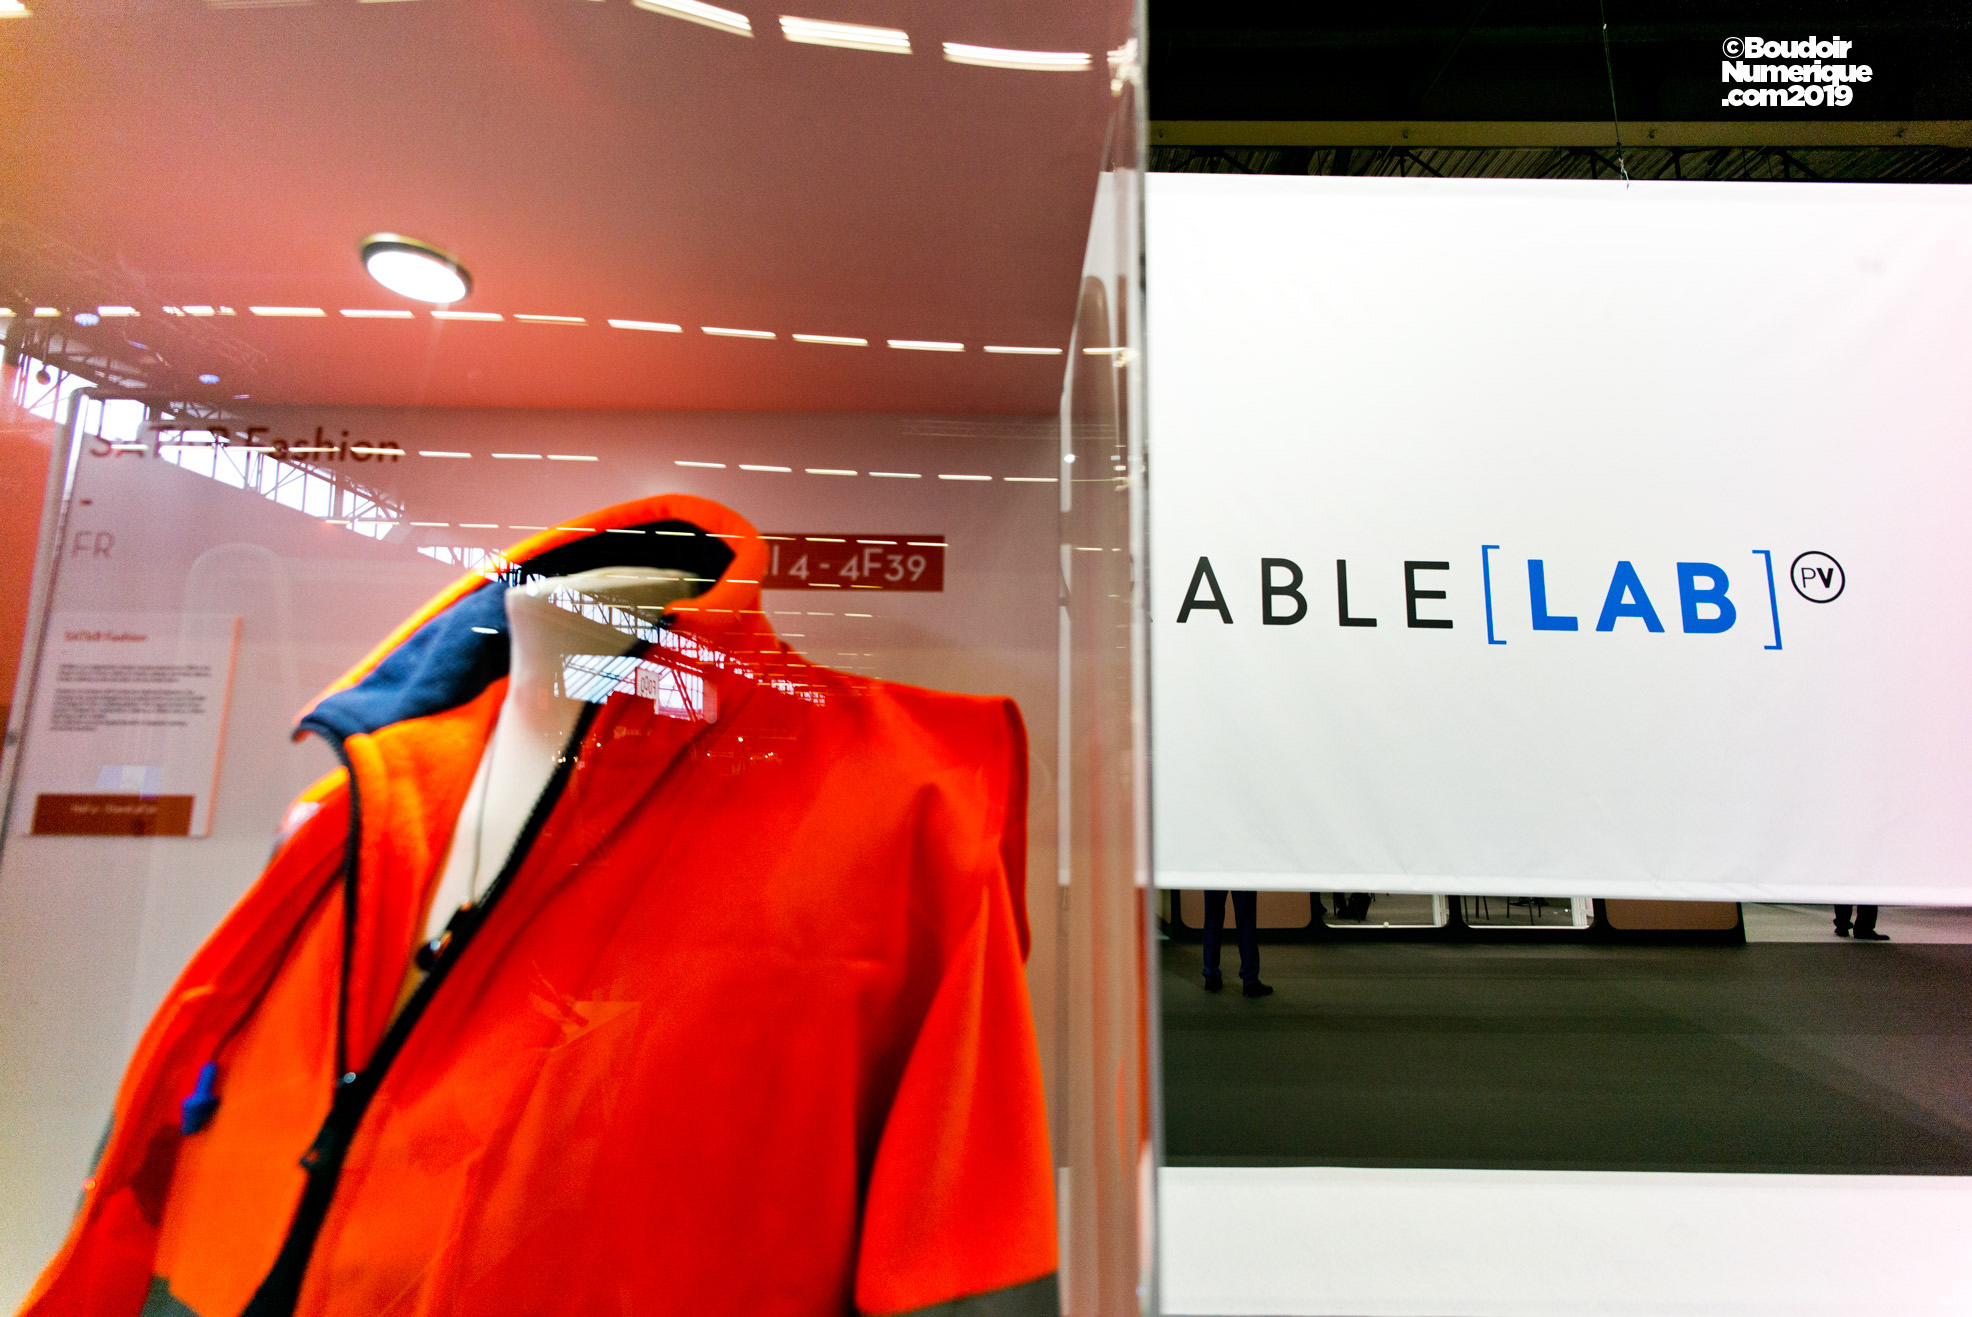 The french company Satab offers designers of e-textile a range of connected ribbons.